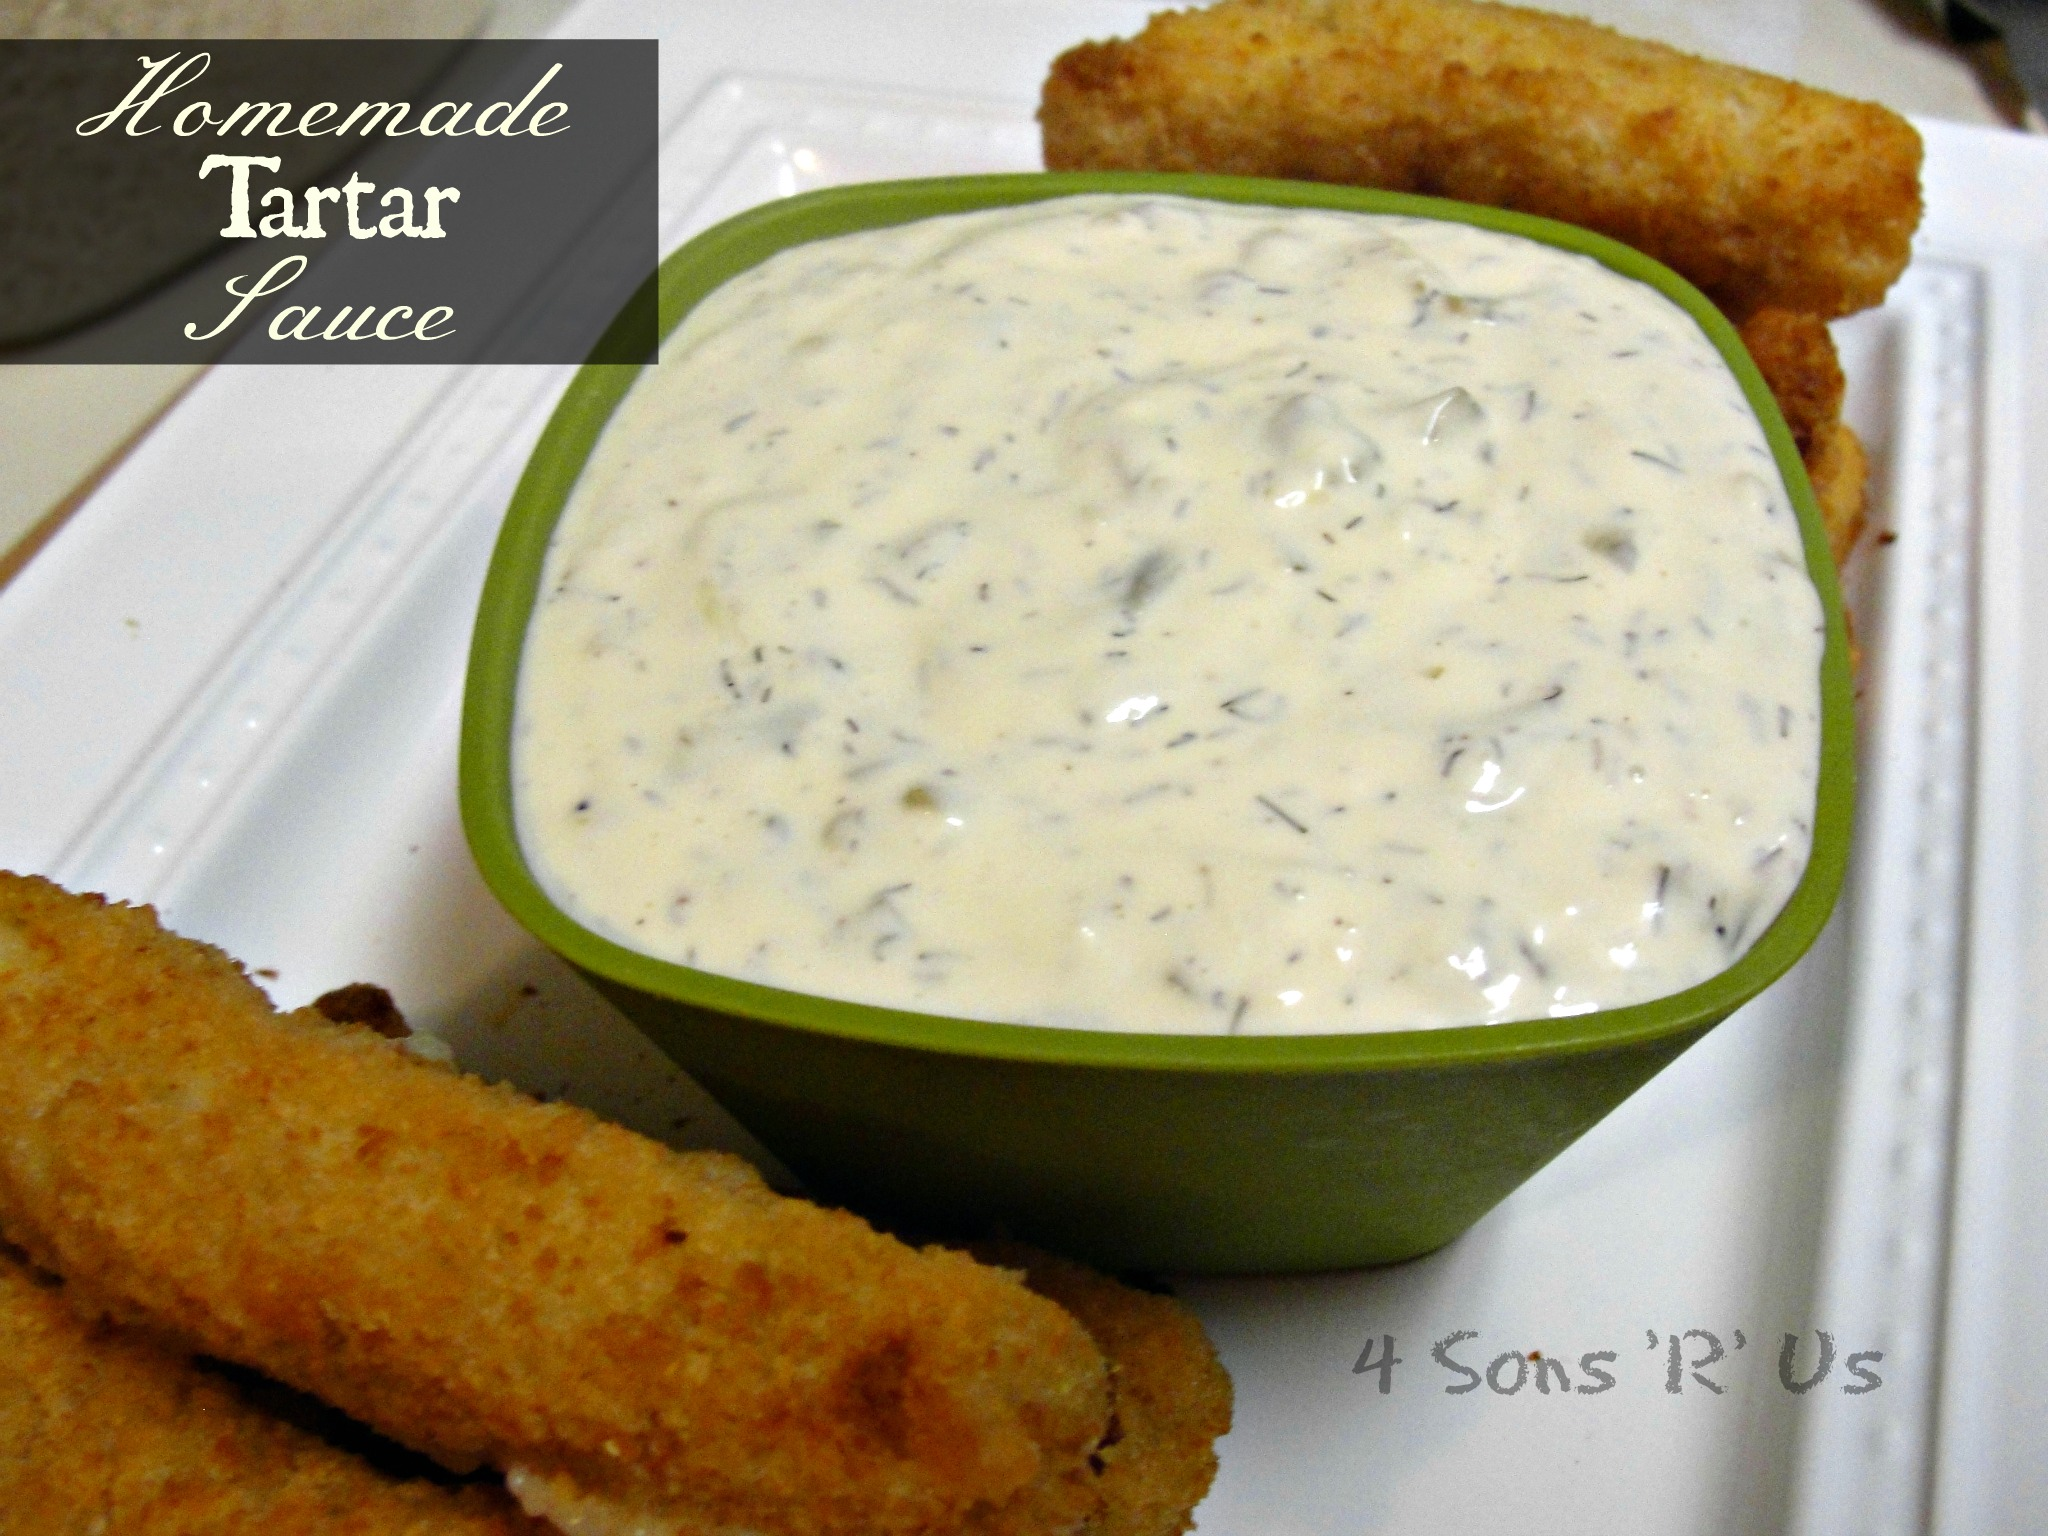 Homemade Tartar Sauce | 4 Sons 'R' Us